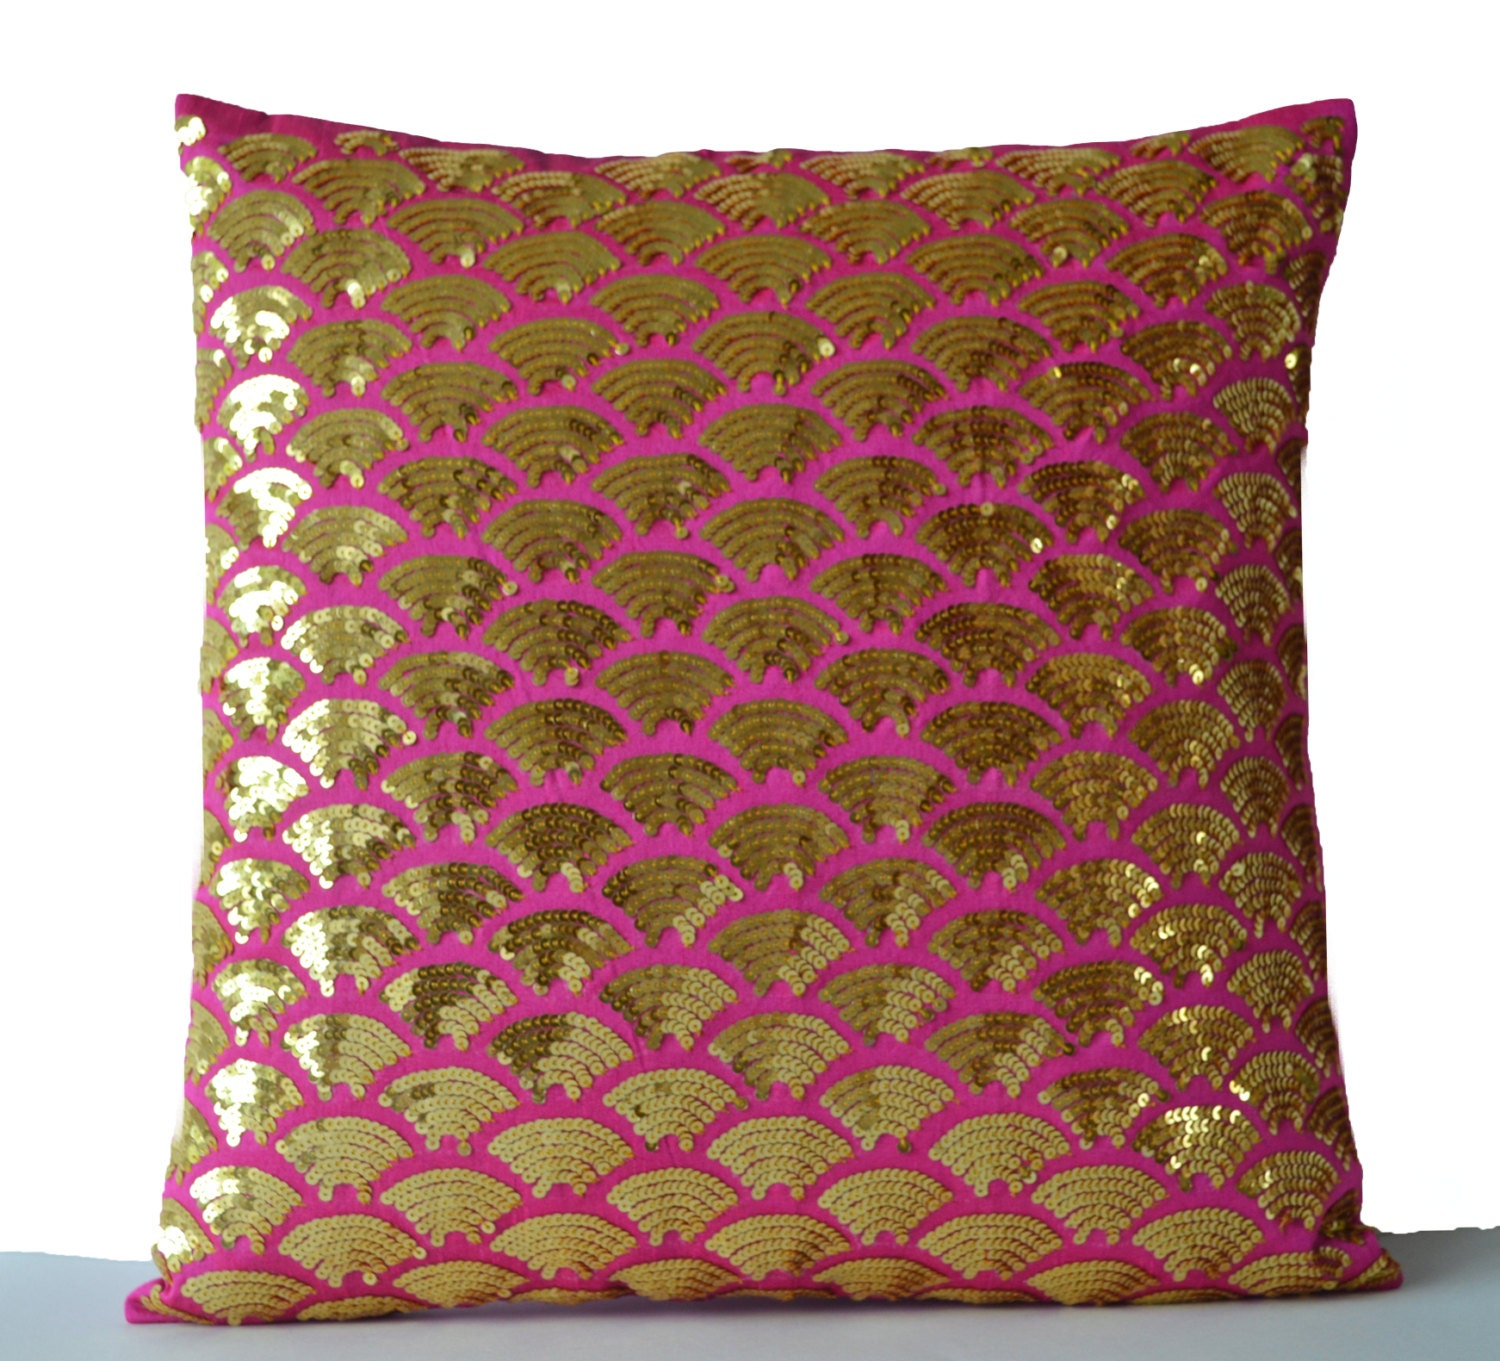 Throw Pillows Gif : Decorative Pillows Gold Accent Pillows Gold Pillow Gold